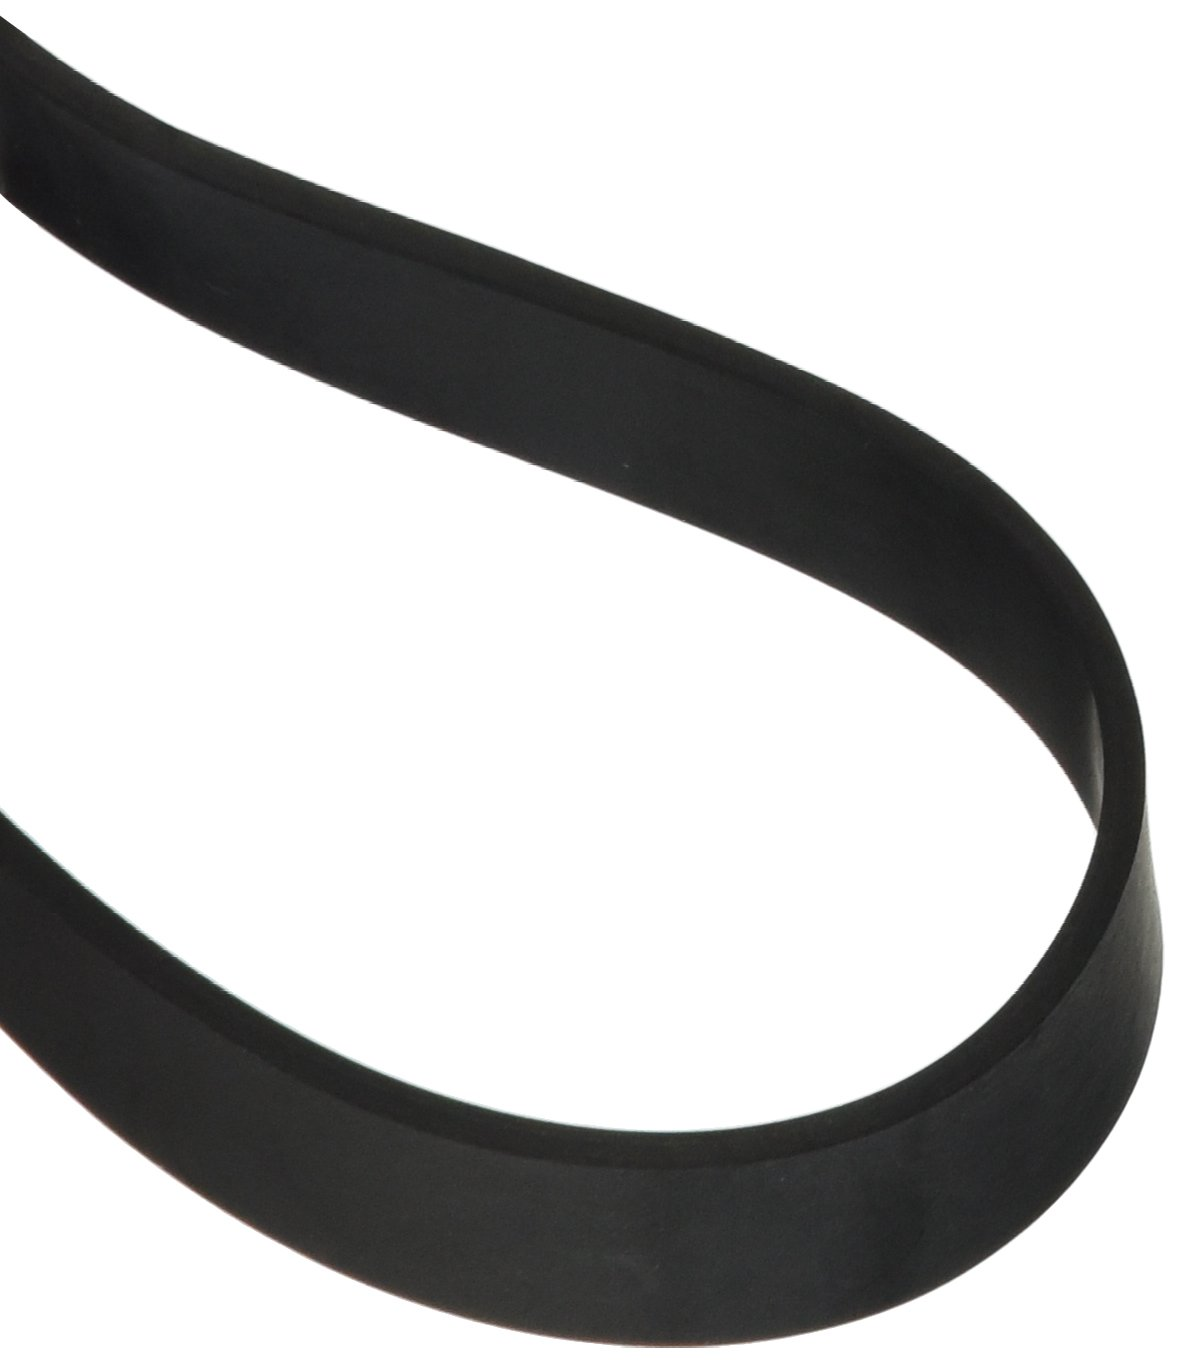 Eureka Vacuum Cleaner Belt Style U Part Number 61120G (4 Belts)